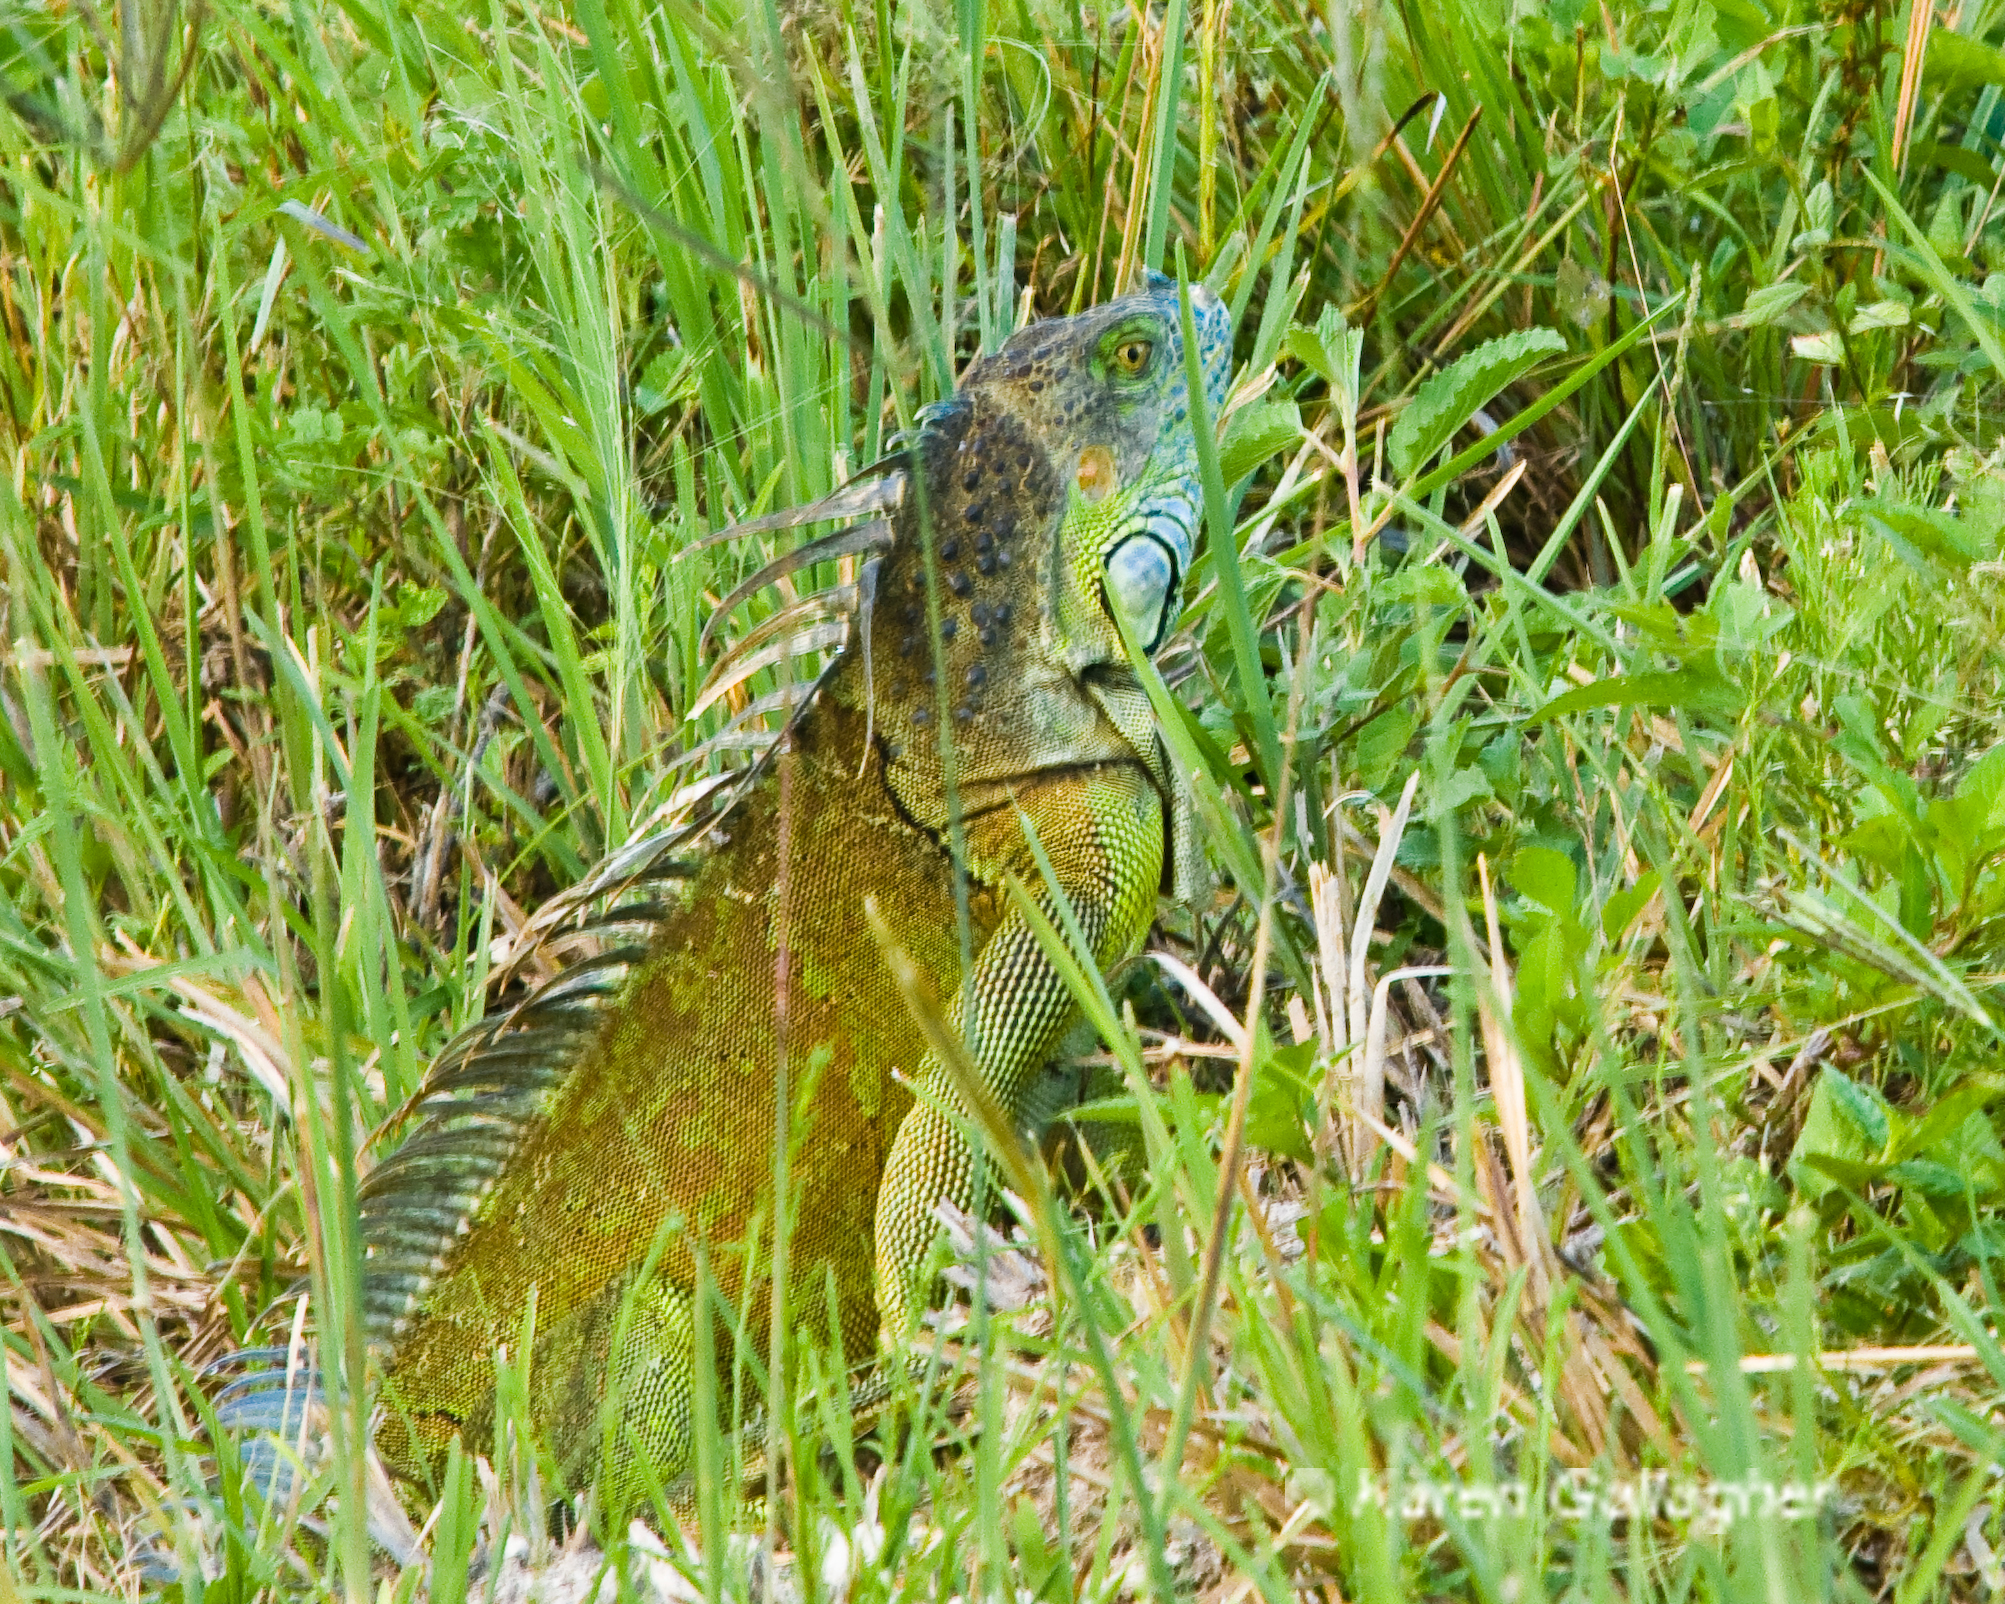 Blue-faced Iguana in Tall Grass